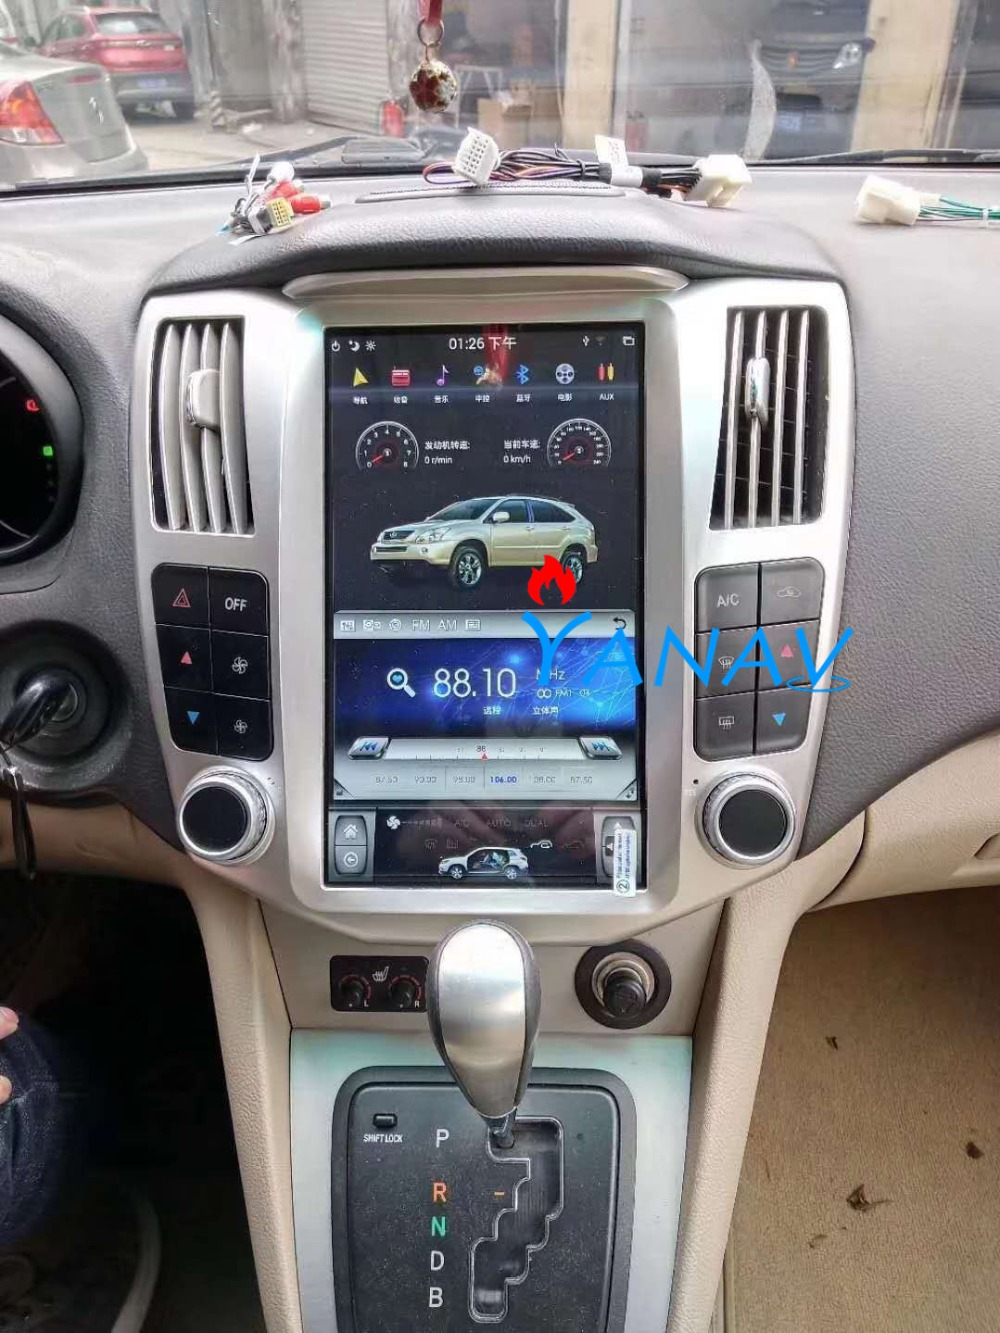 4+64GB <font><b>Android</b></font> Car GPS Navigation For-<font><b>LEXUS</b></font> RX300/330/350/400h 2004-2008 Car radio player Auto stereo head unit Car Dvd Player image